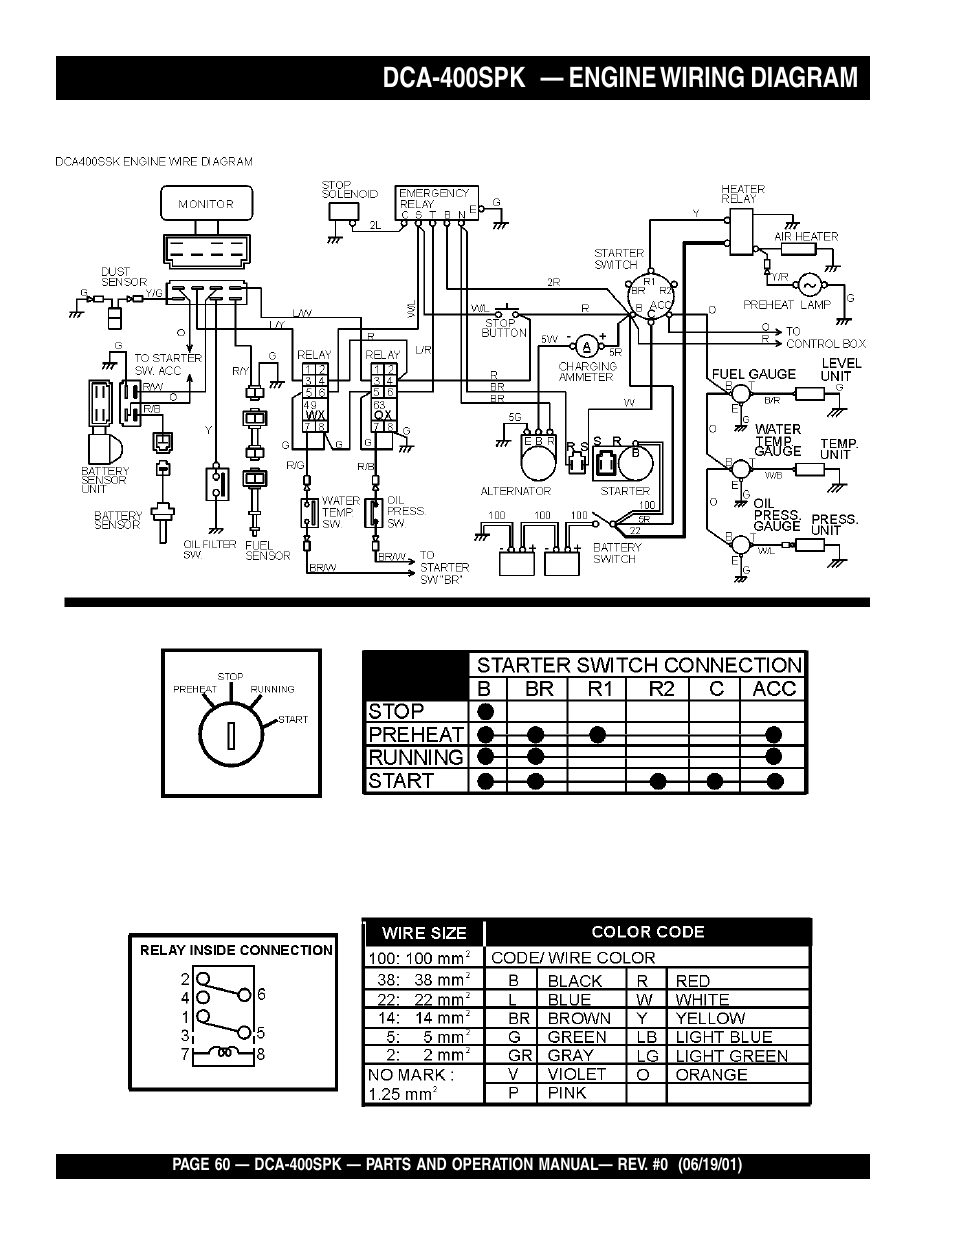 Dca 400spk engine wiring diagram multiquip mq power whisperwatt dca 400spk engine wiring diagram multiquip mq power whisperwatt generator dca 400spk cheapraybanclubmaster Image collections